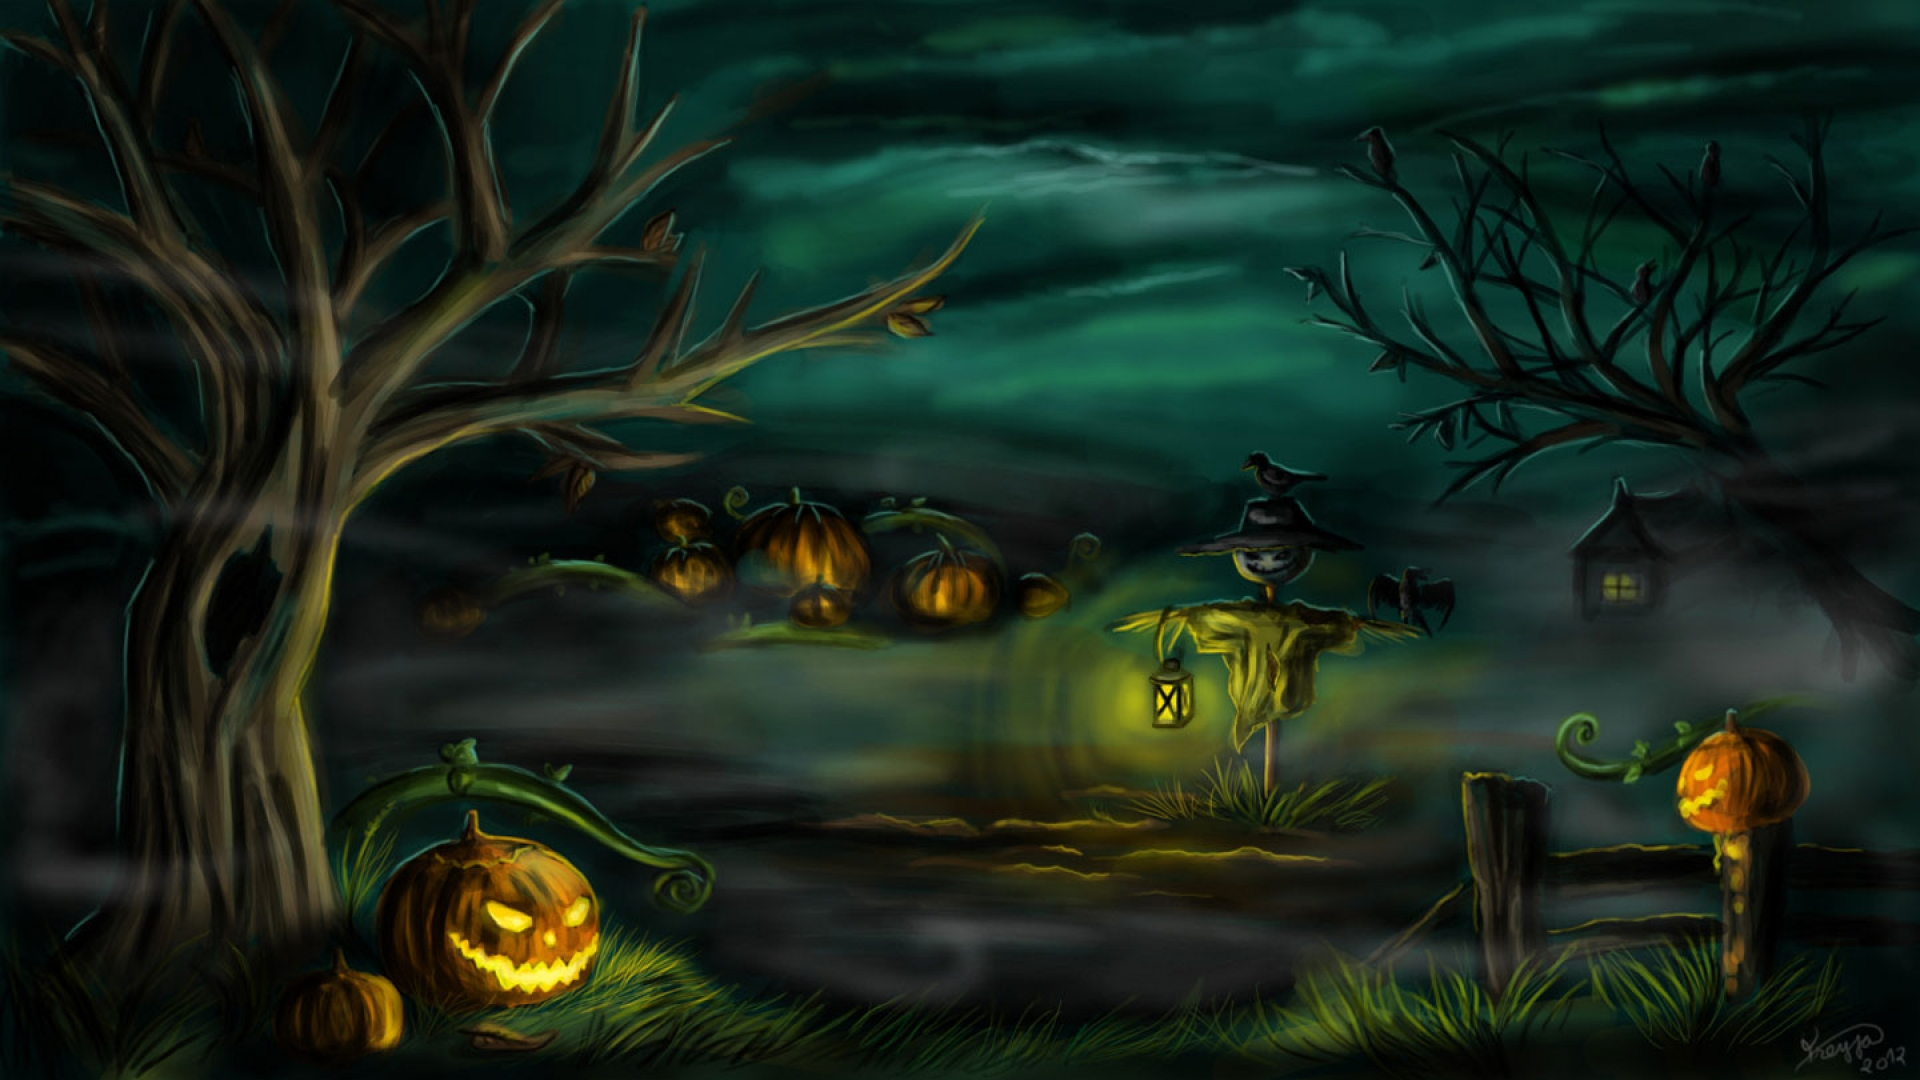 Scary halloween wallpapers images photos pictures backgrounds - Scary halloween wallpaper ...